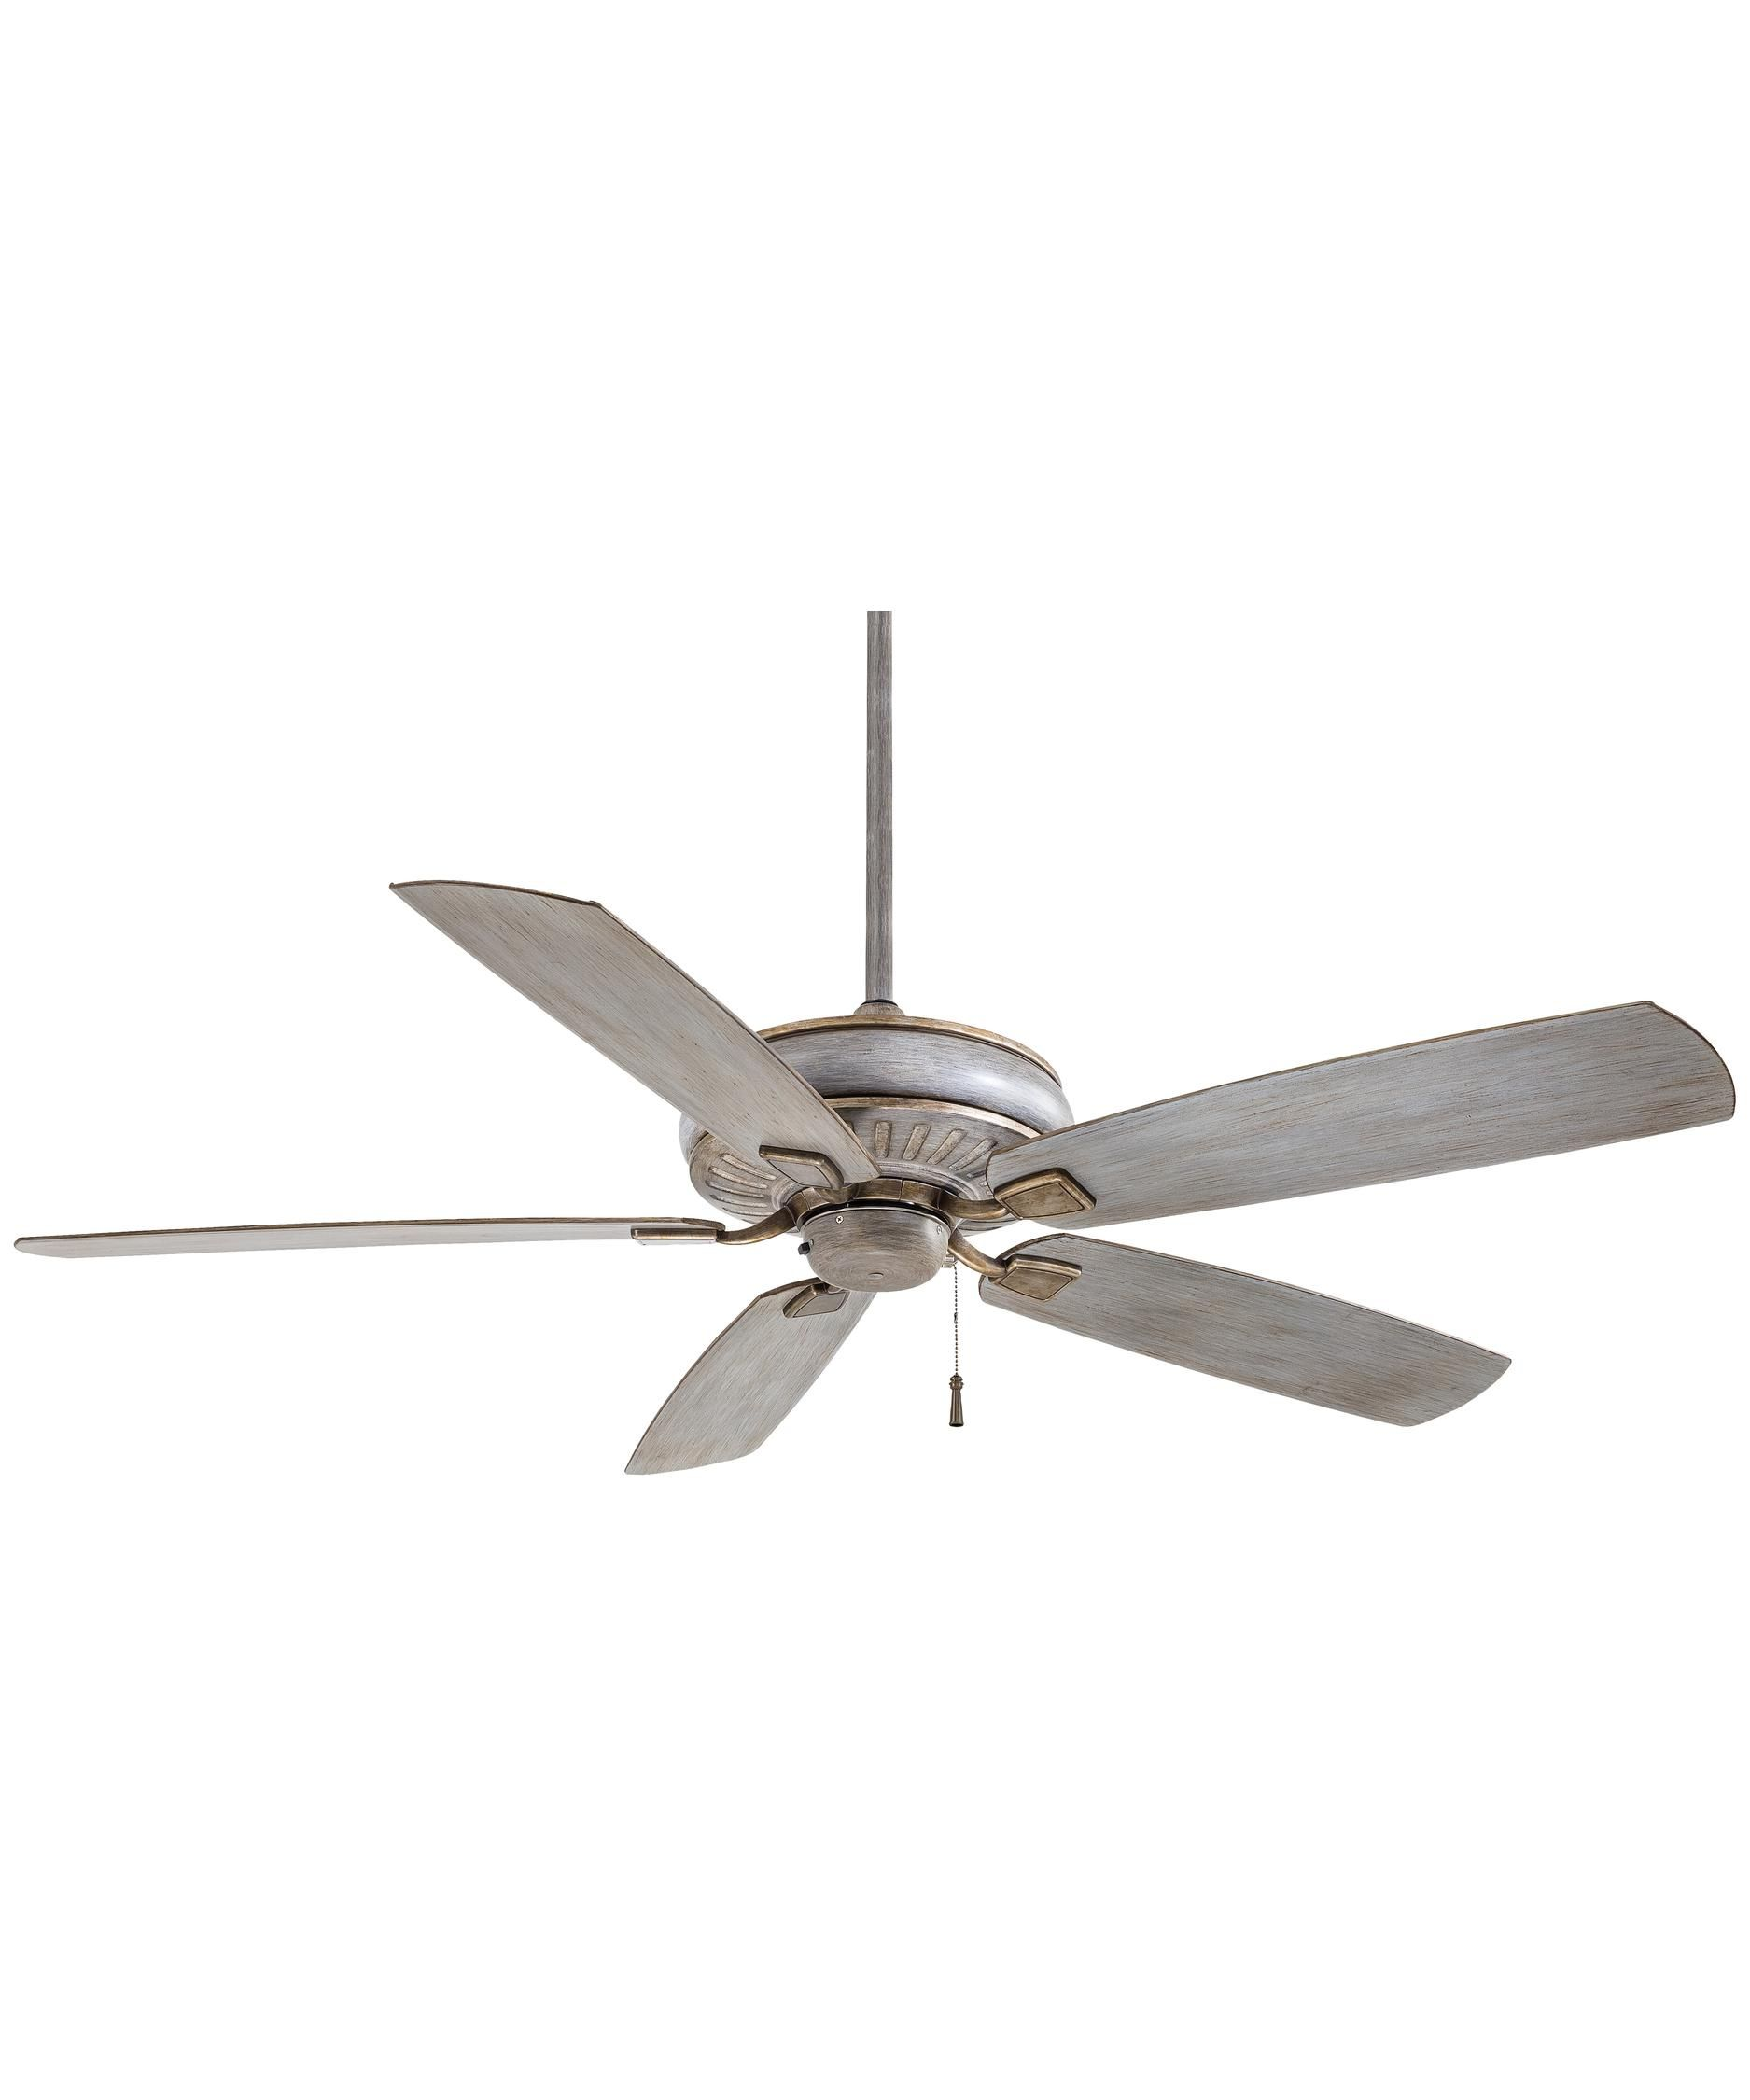 La Salle Ceiling Fan With Light By Savoy House 60 5025 313 13 With Images Ceiling Fan With Light Ceiling Fan Fan Light